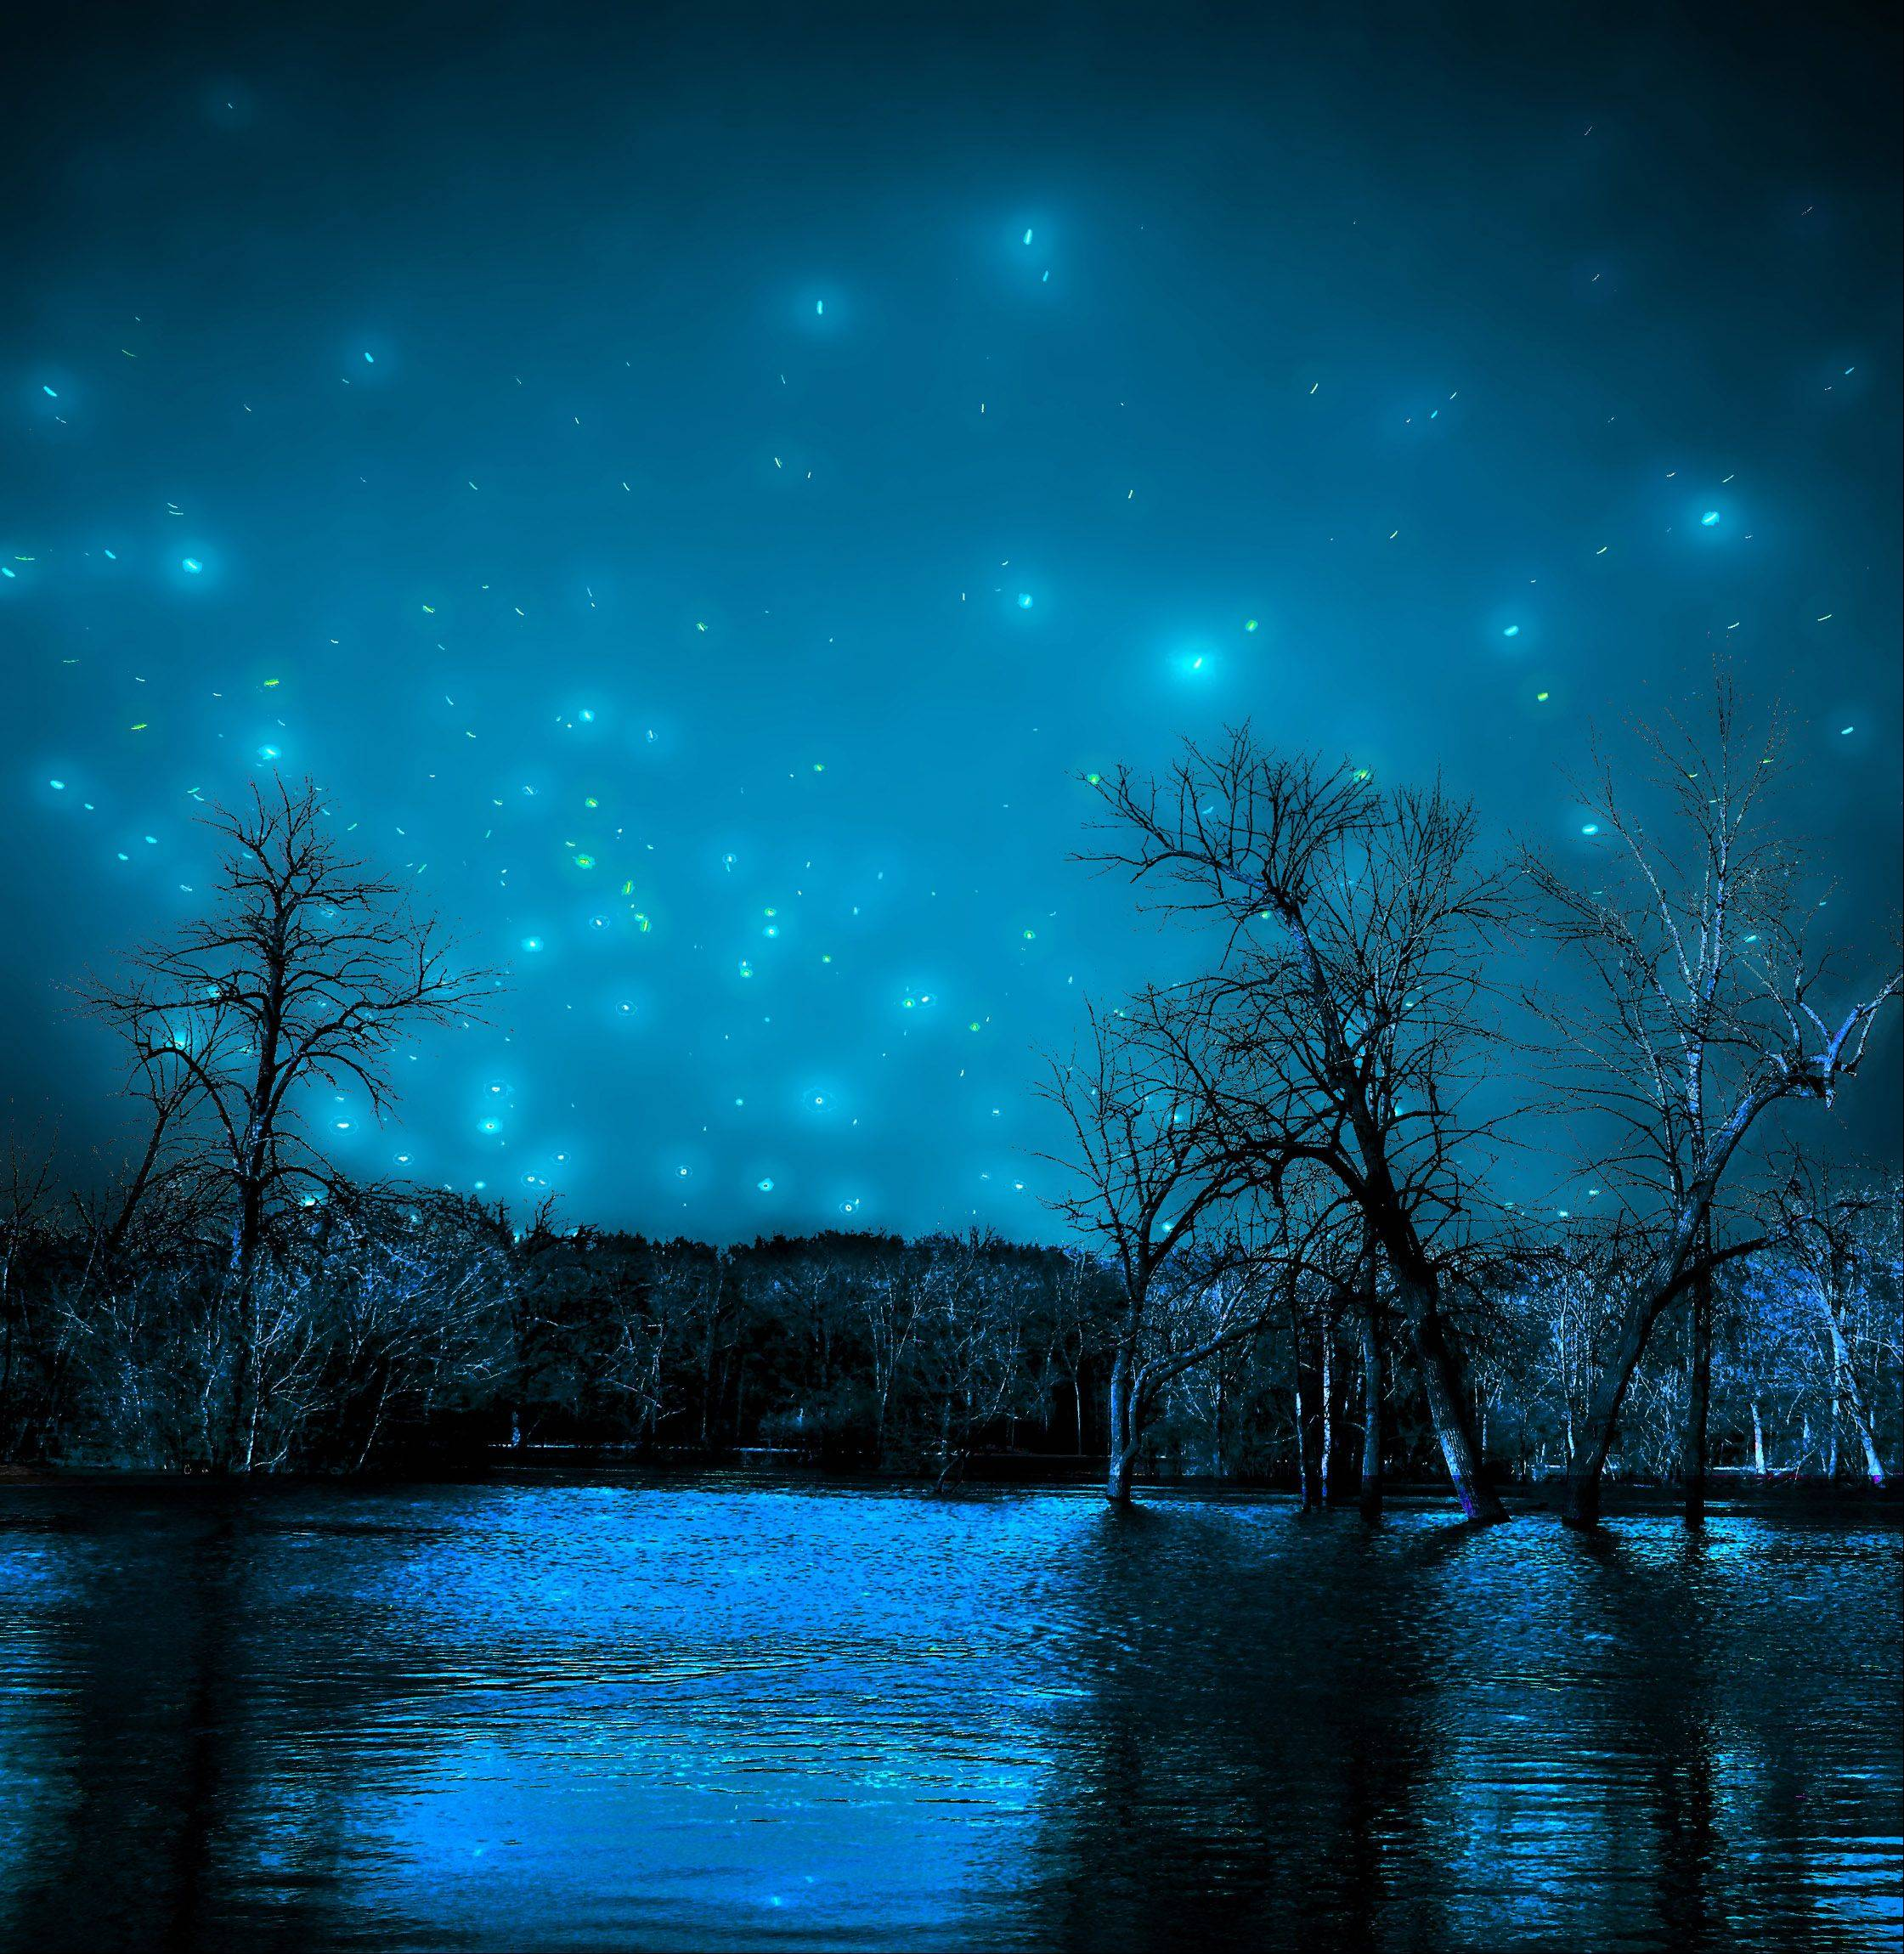 The flooded Des Plaines River taken at night several months ago.